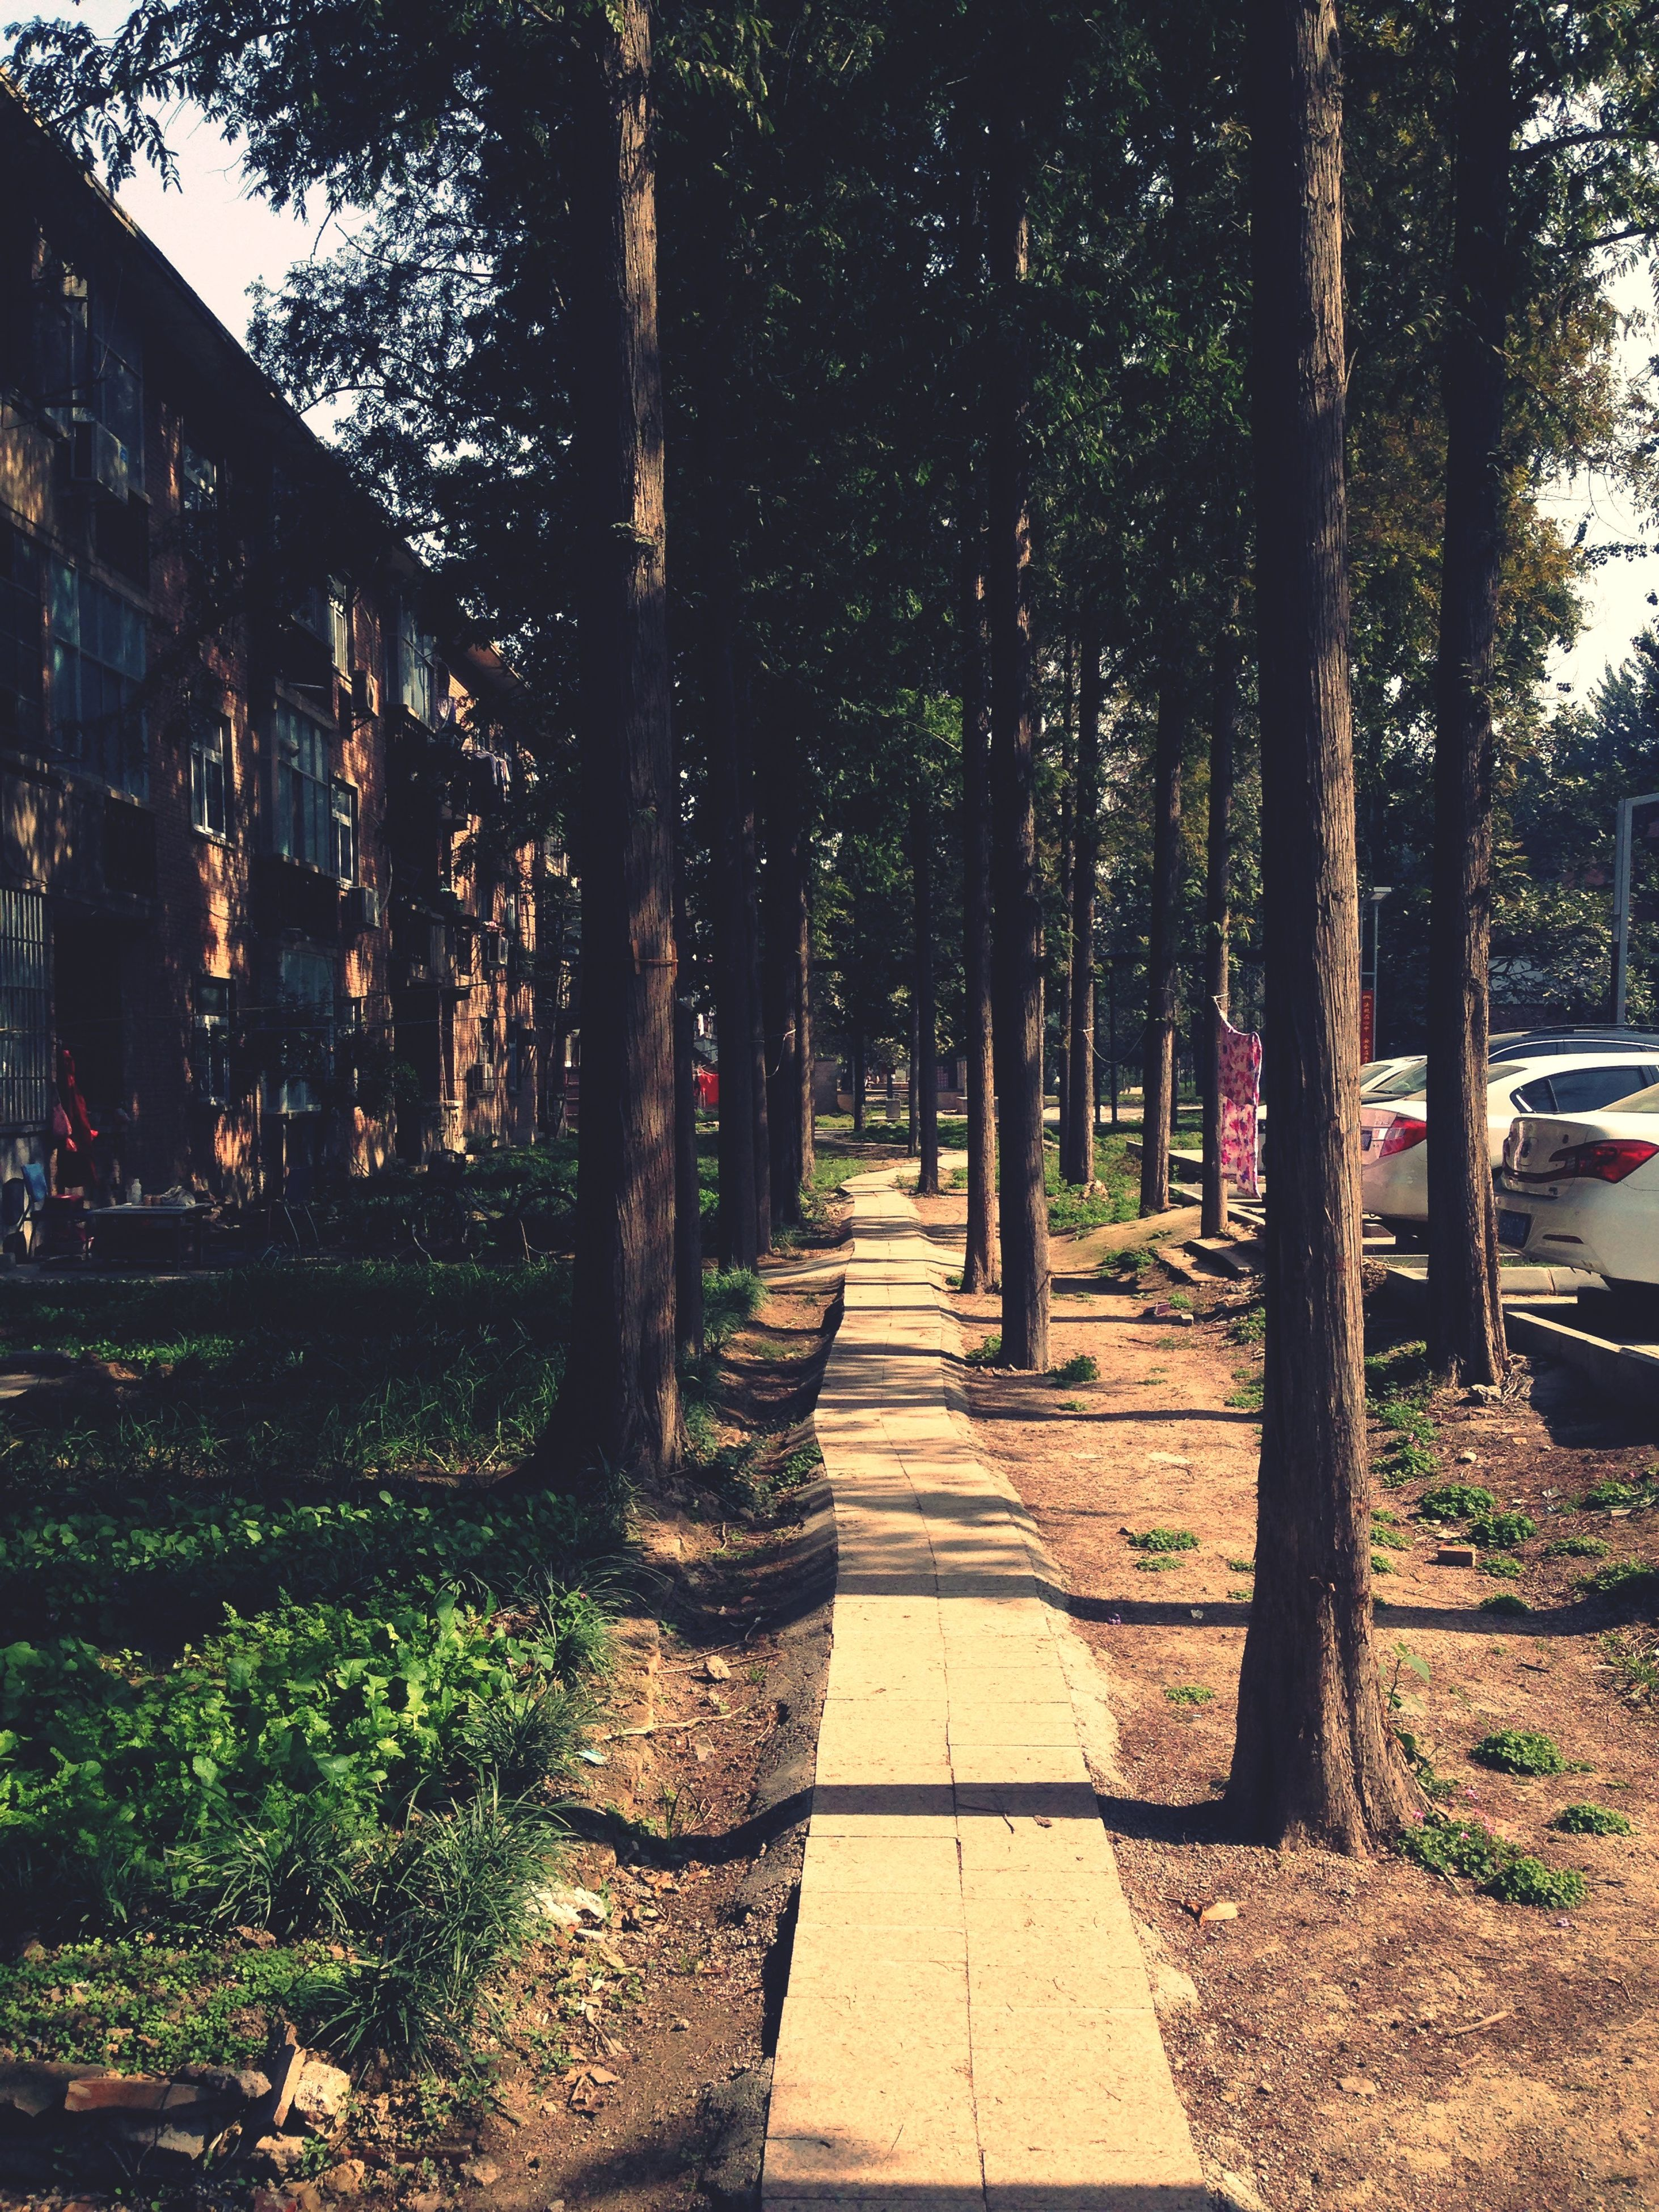 tree, the way forward, footpath, tree trunk, growth, treelined, walkway, diminishing perspective, street, transportation, shadow, sunlight, park - man made space, built structure, nature, outdoors, pathway, vanishing point, road, building exterior